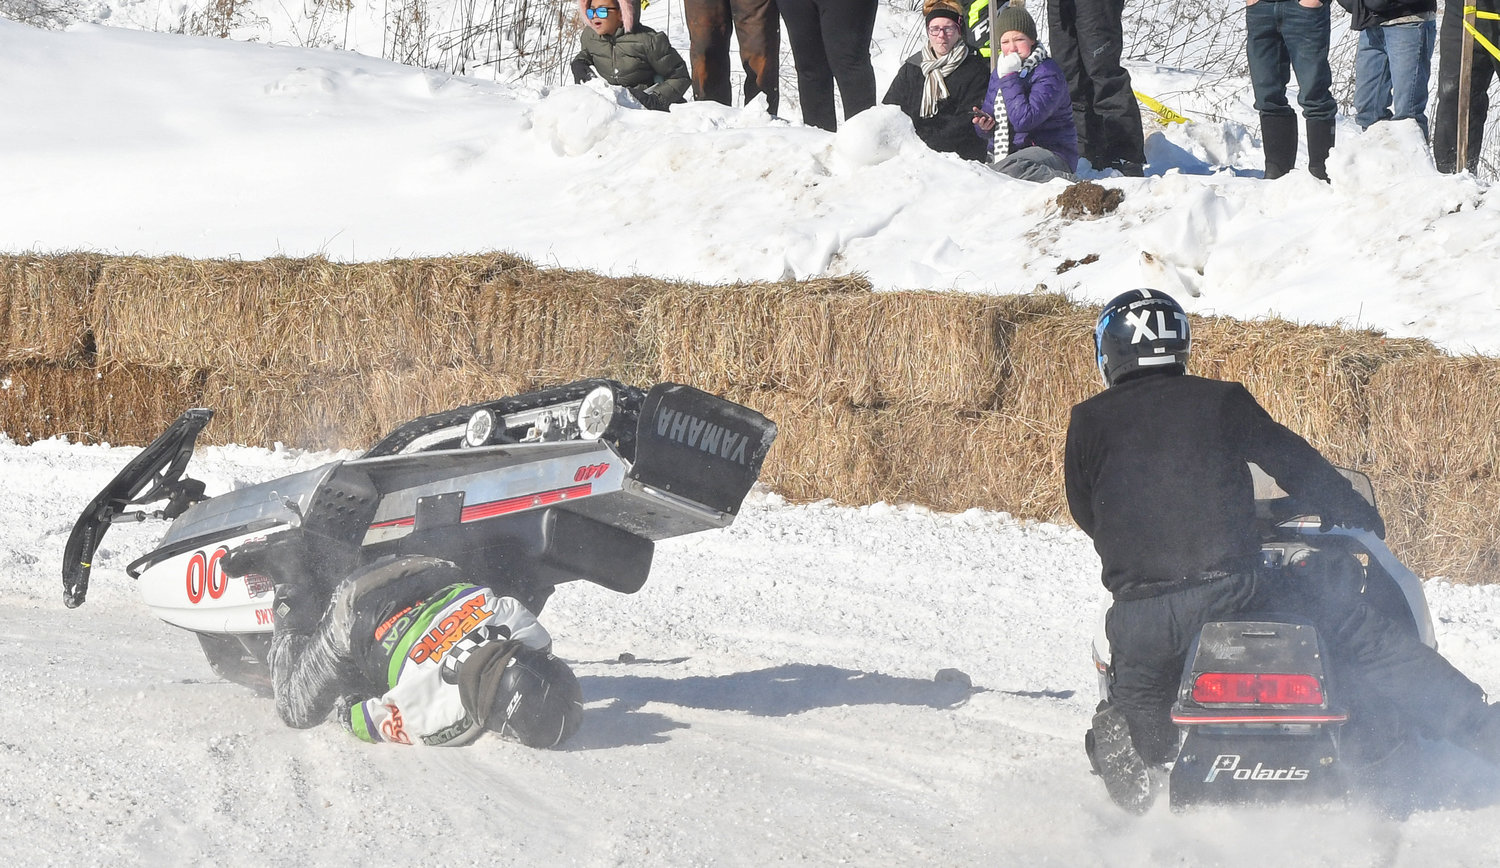 Randy Storms gets upside down with the sled rolling over on top of him at the Old Dog Races in Taberg on Saturday.